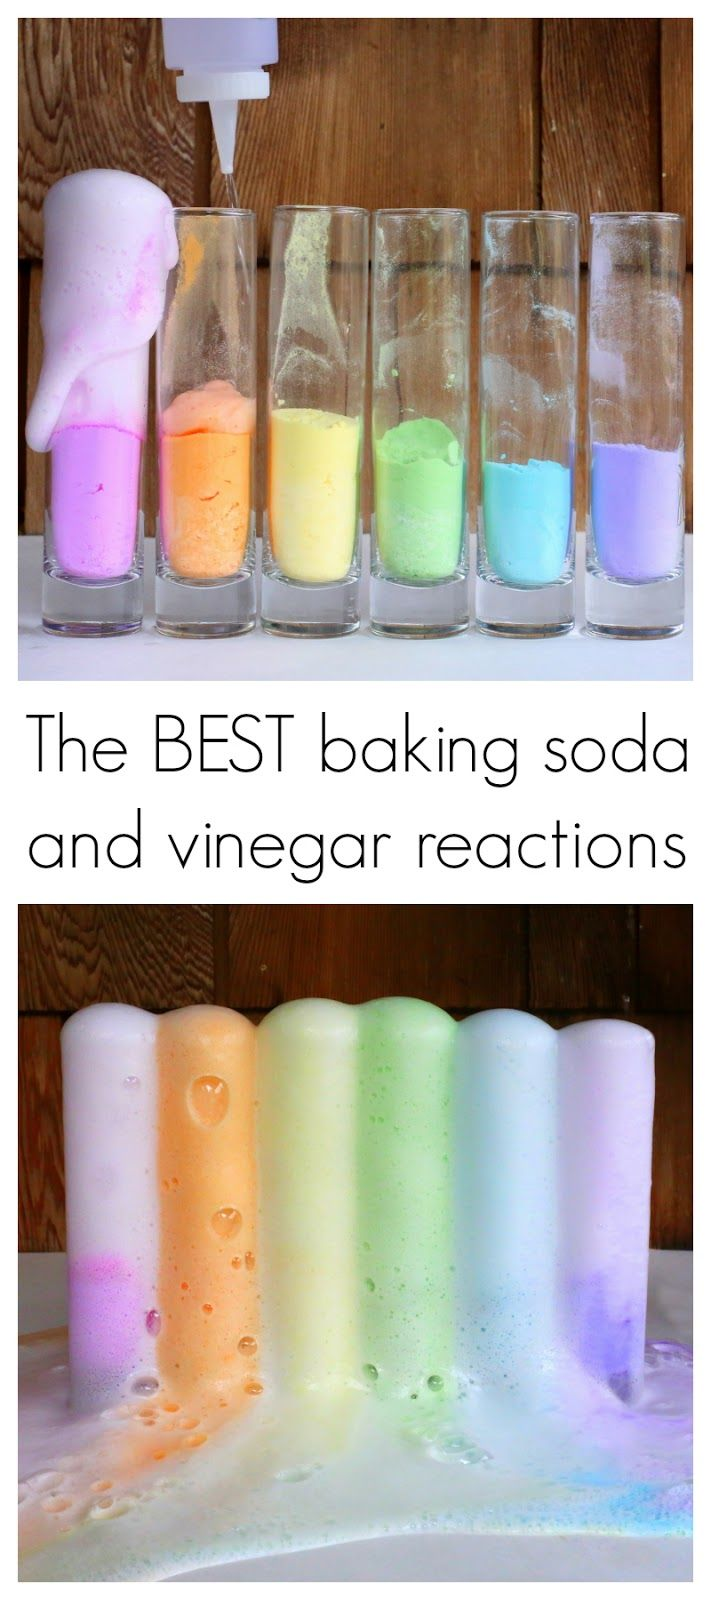 how to use baking soda and vinegar